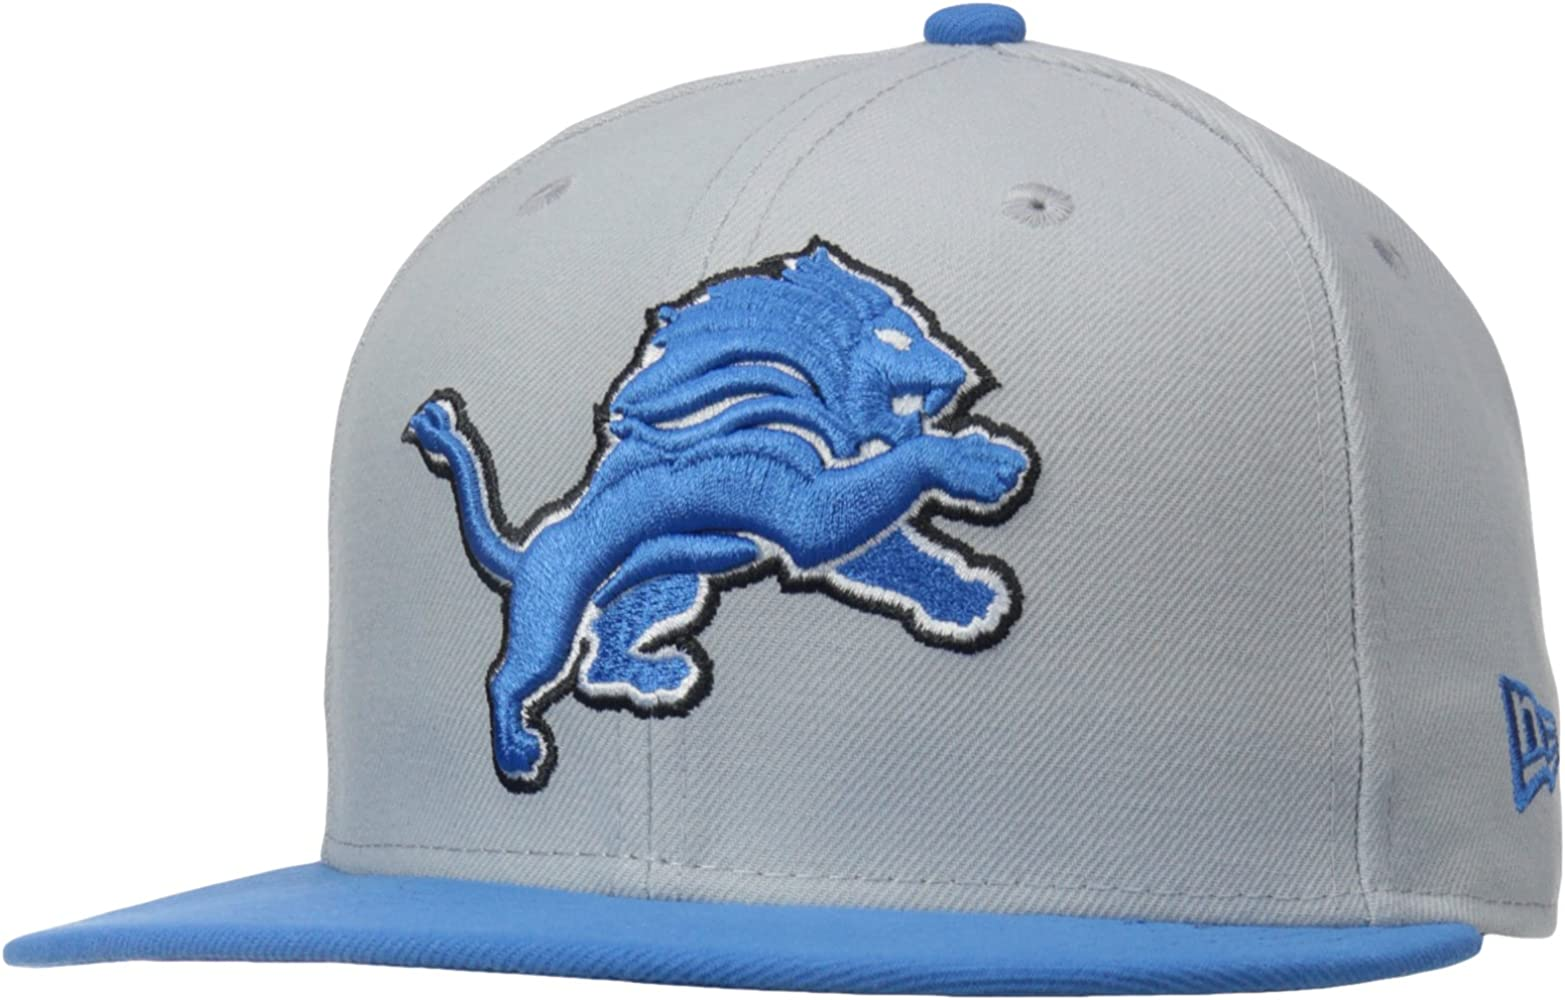 Nfl Mens Detroit Lions On Field 5950 White Game Cap By New Era